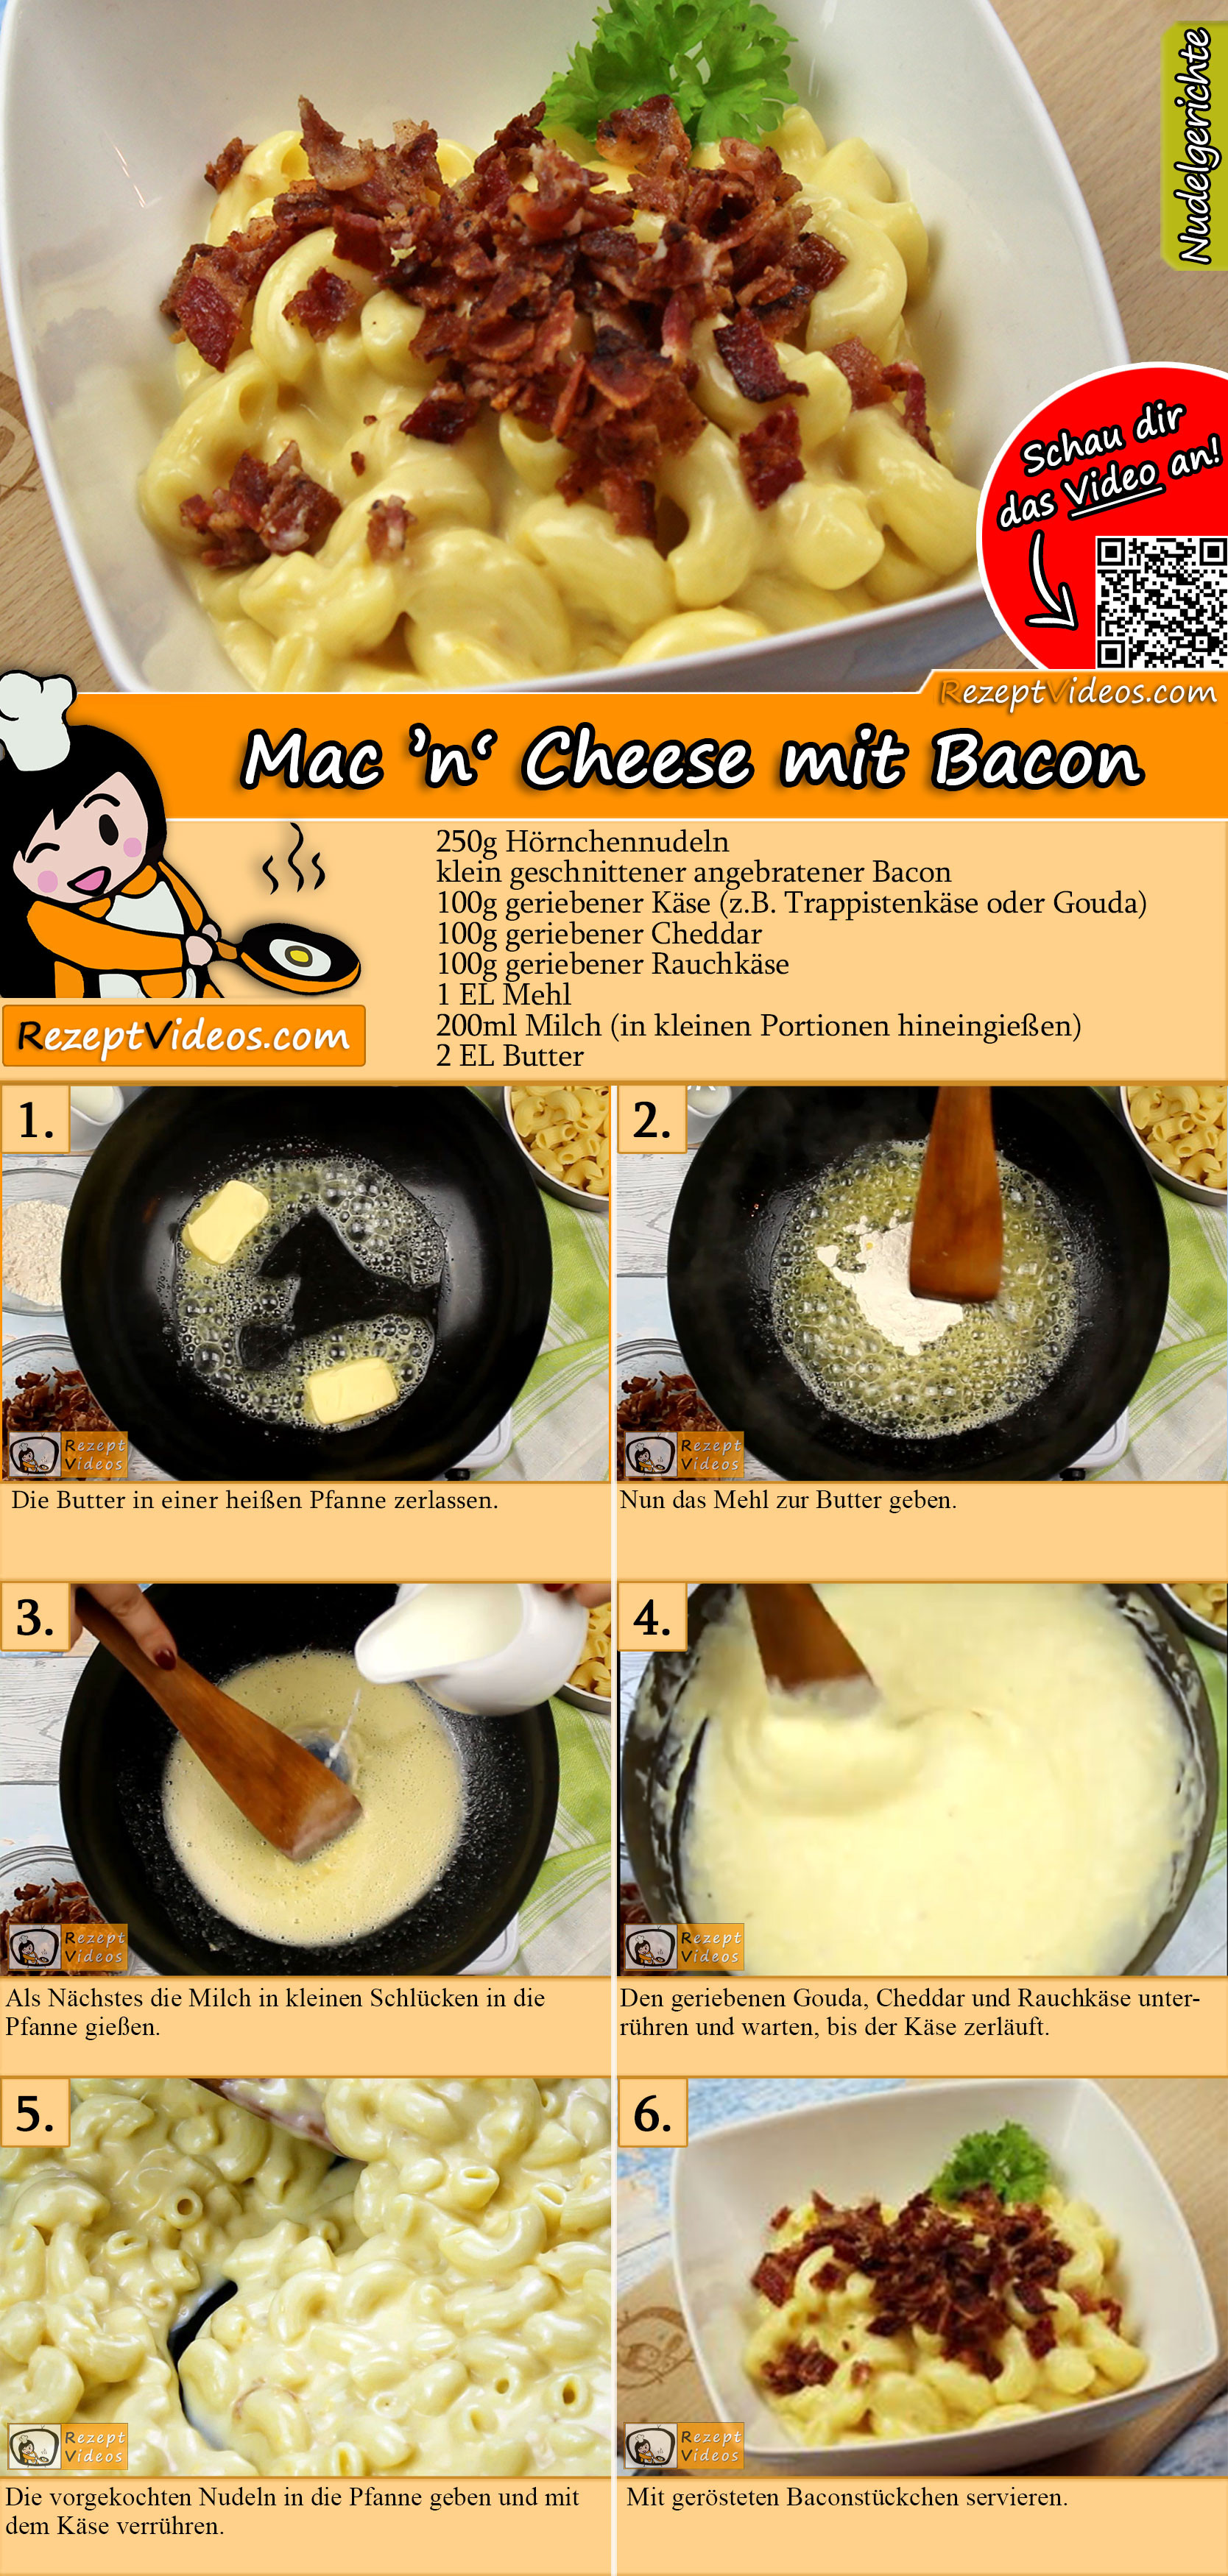 Mac 'n' Cheese mit Bacon Rezept mit Video